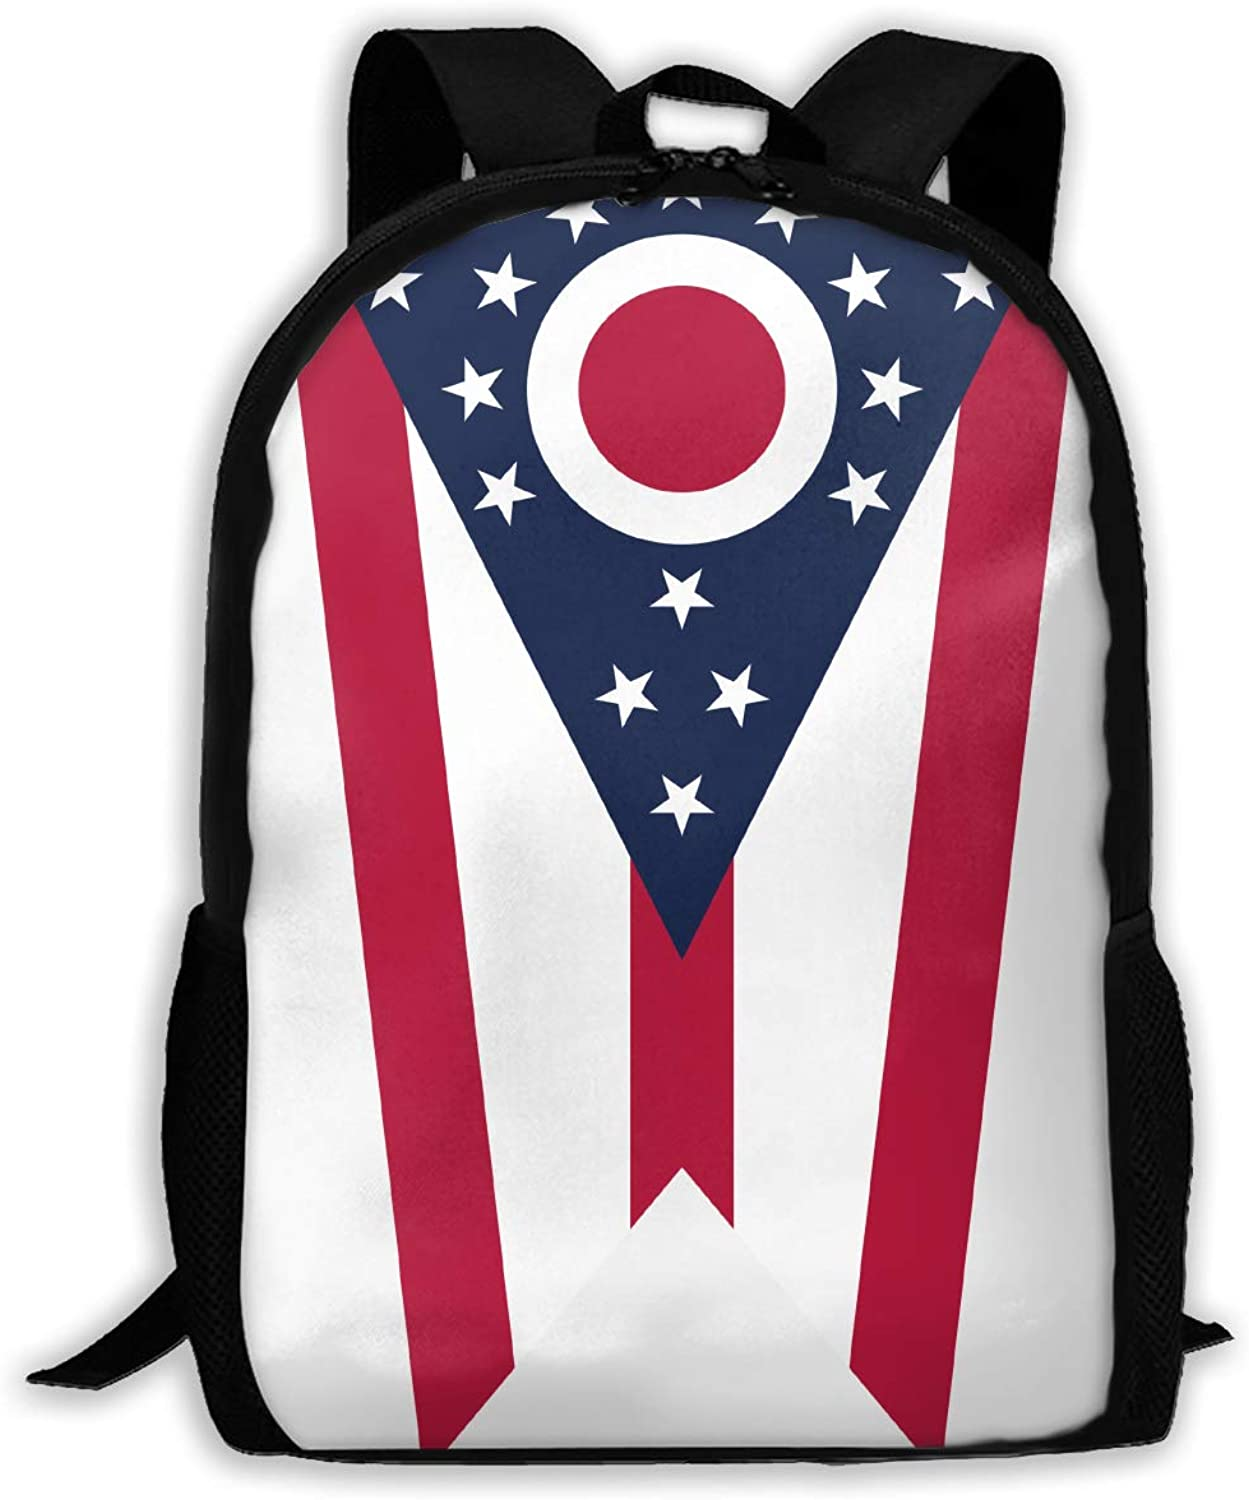 Adult Shoulder Bag Ohio State Flag Multipurpose 3D Printing Casual Backpack College Bags for Travel Camping Hiking Outdoor Sports Men Women